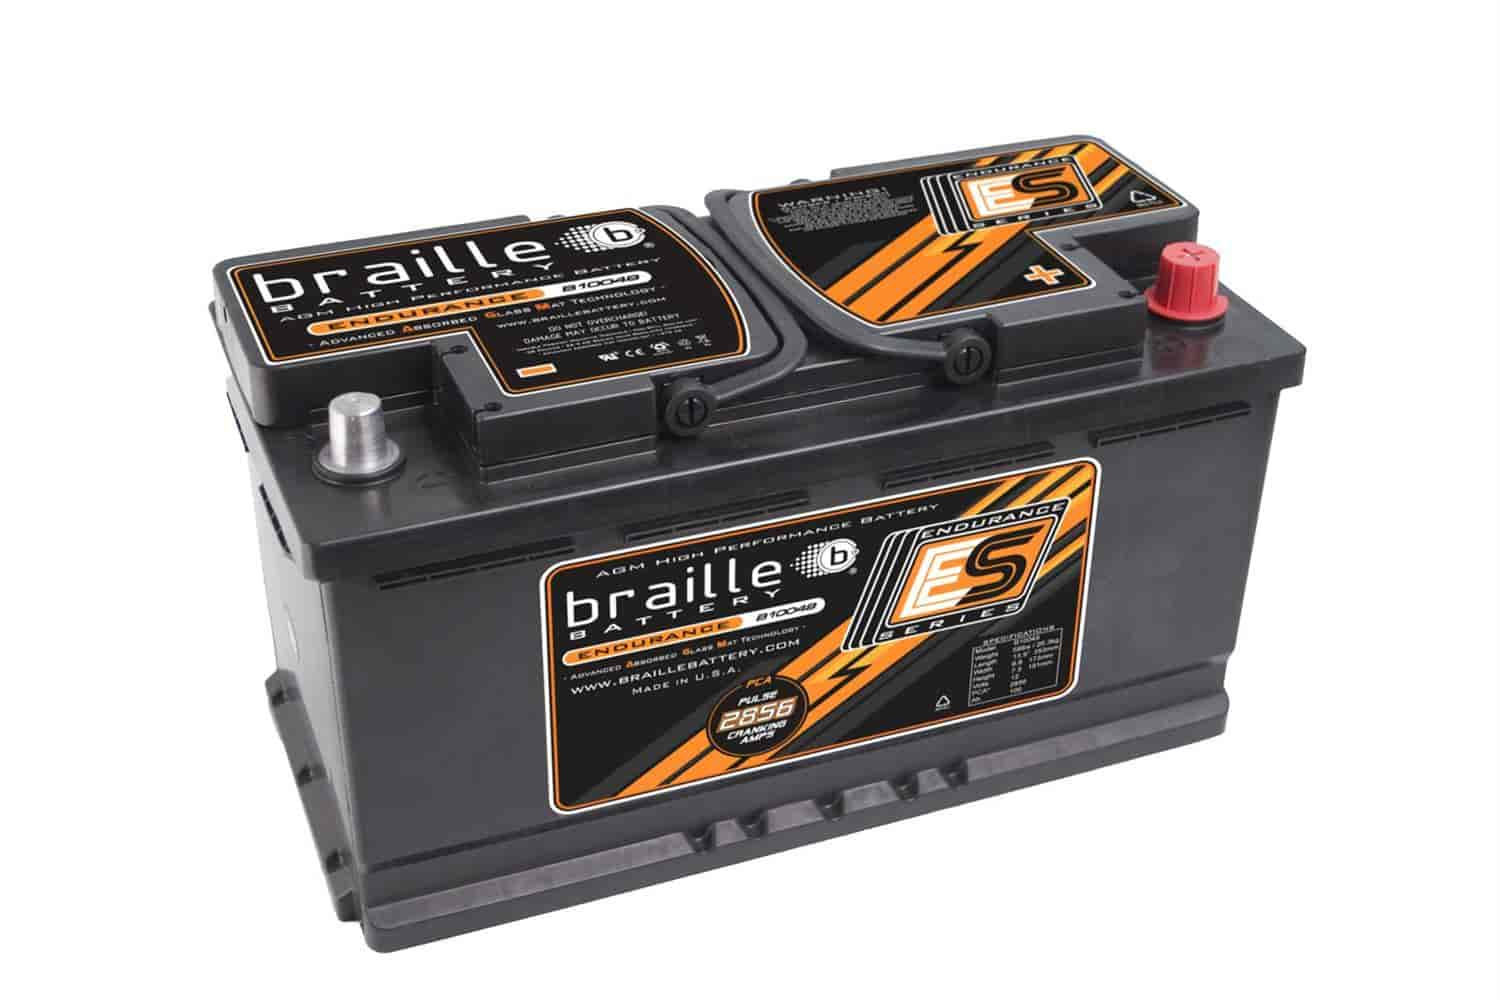 Braille Battery B10049 - Braille Endurance Series Batteries